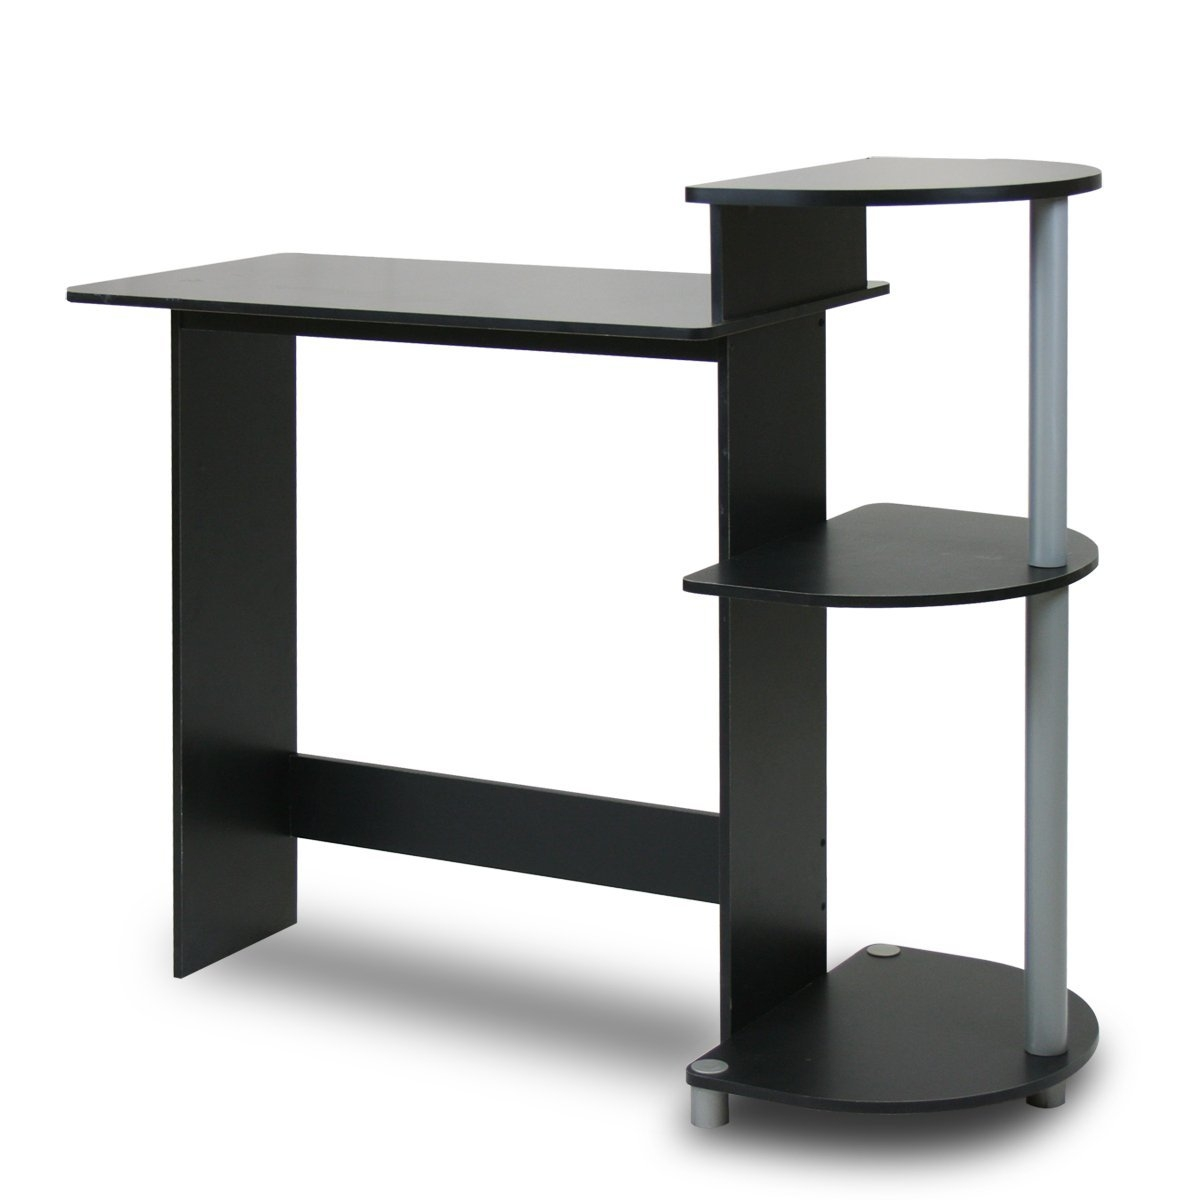 Contemporary Computer Desk In Black And Grey Finish Fastfurnishings